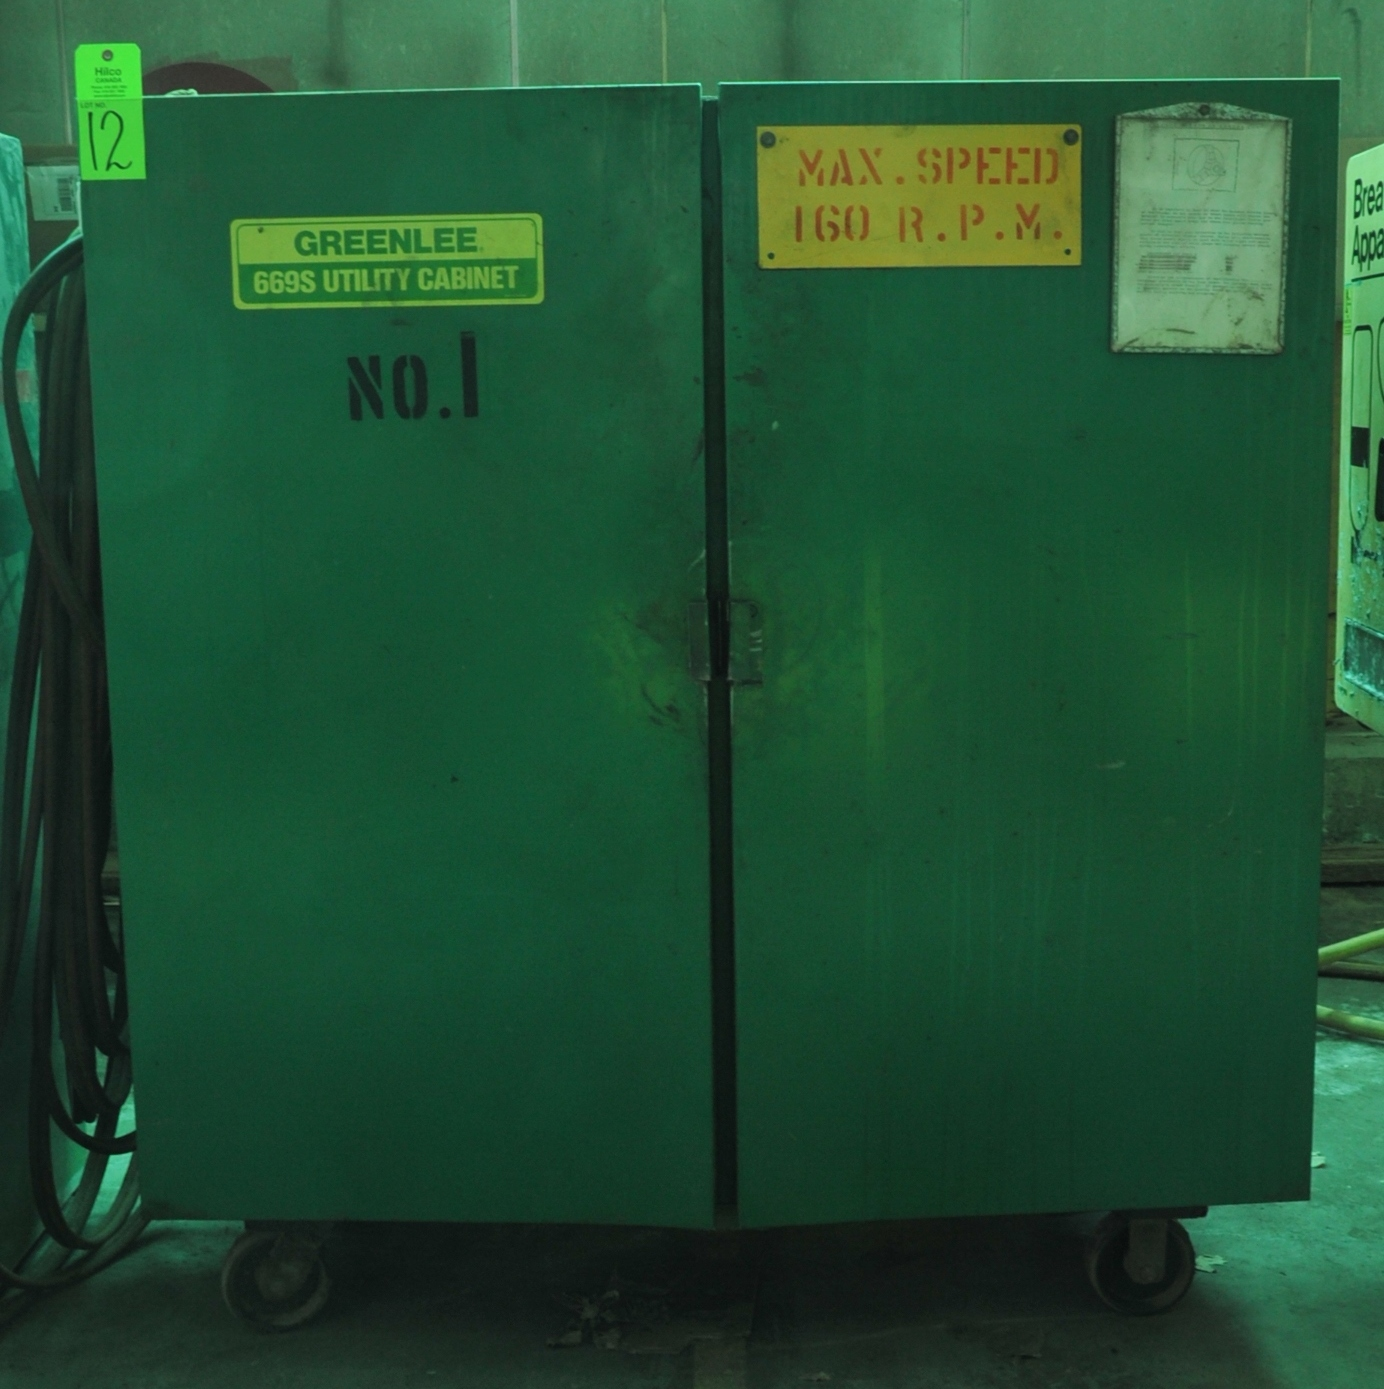 Lot 12 - Greenlee Model 669S Portable Utility Cabinet